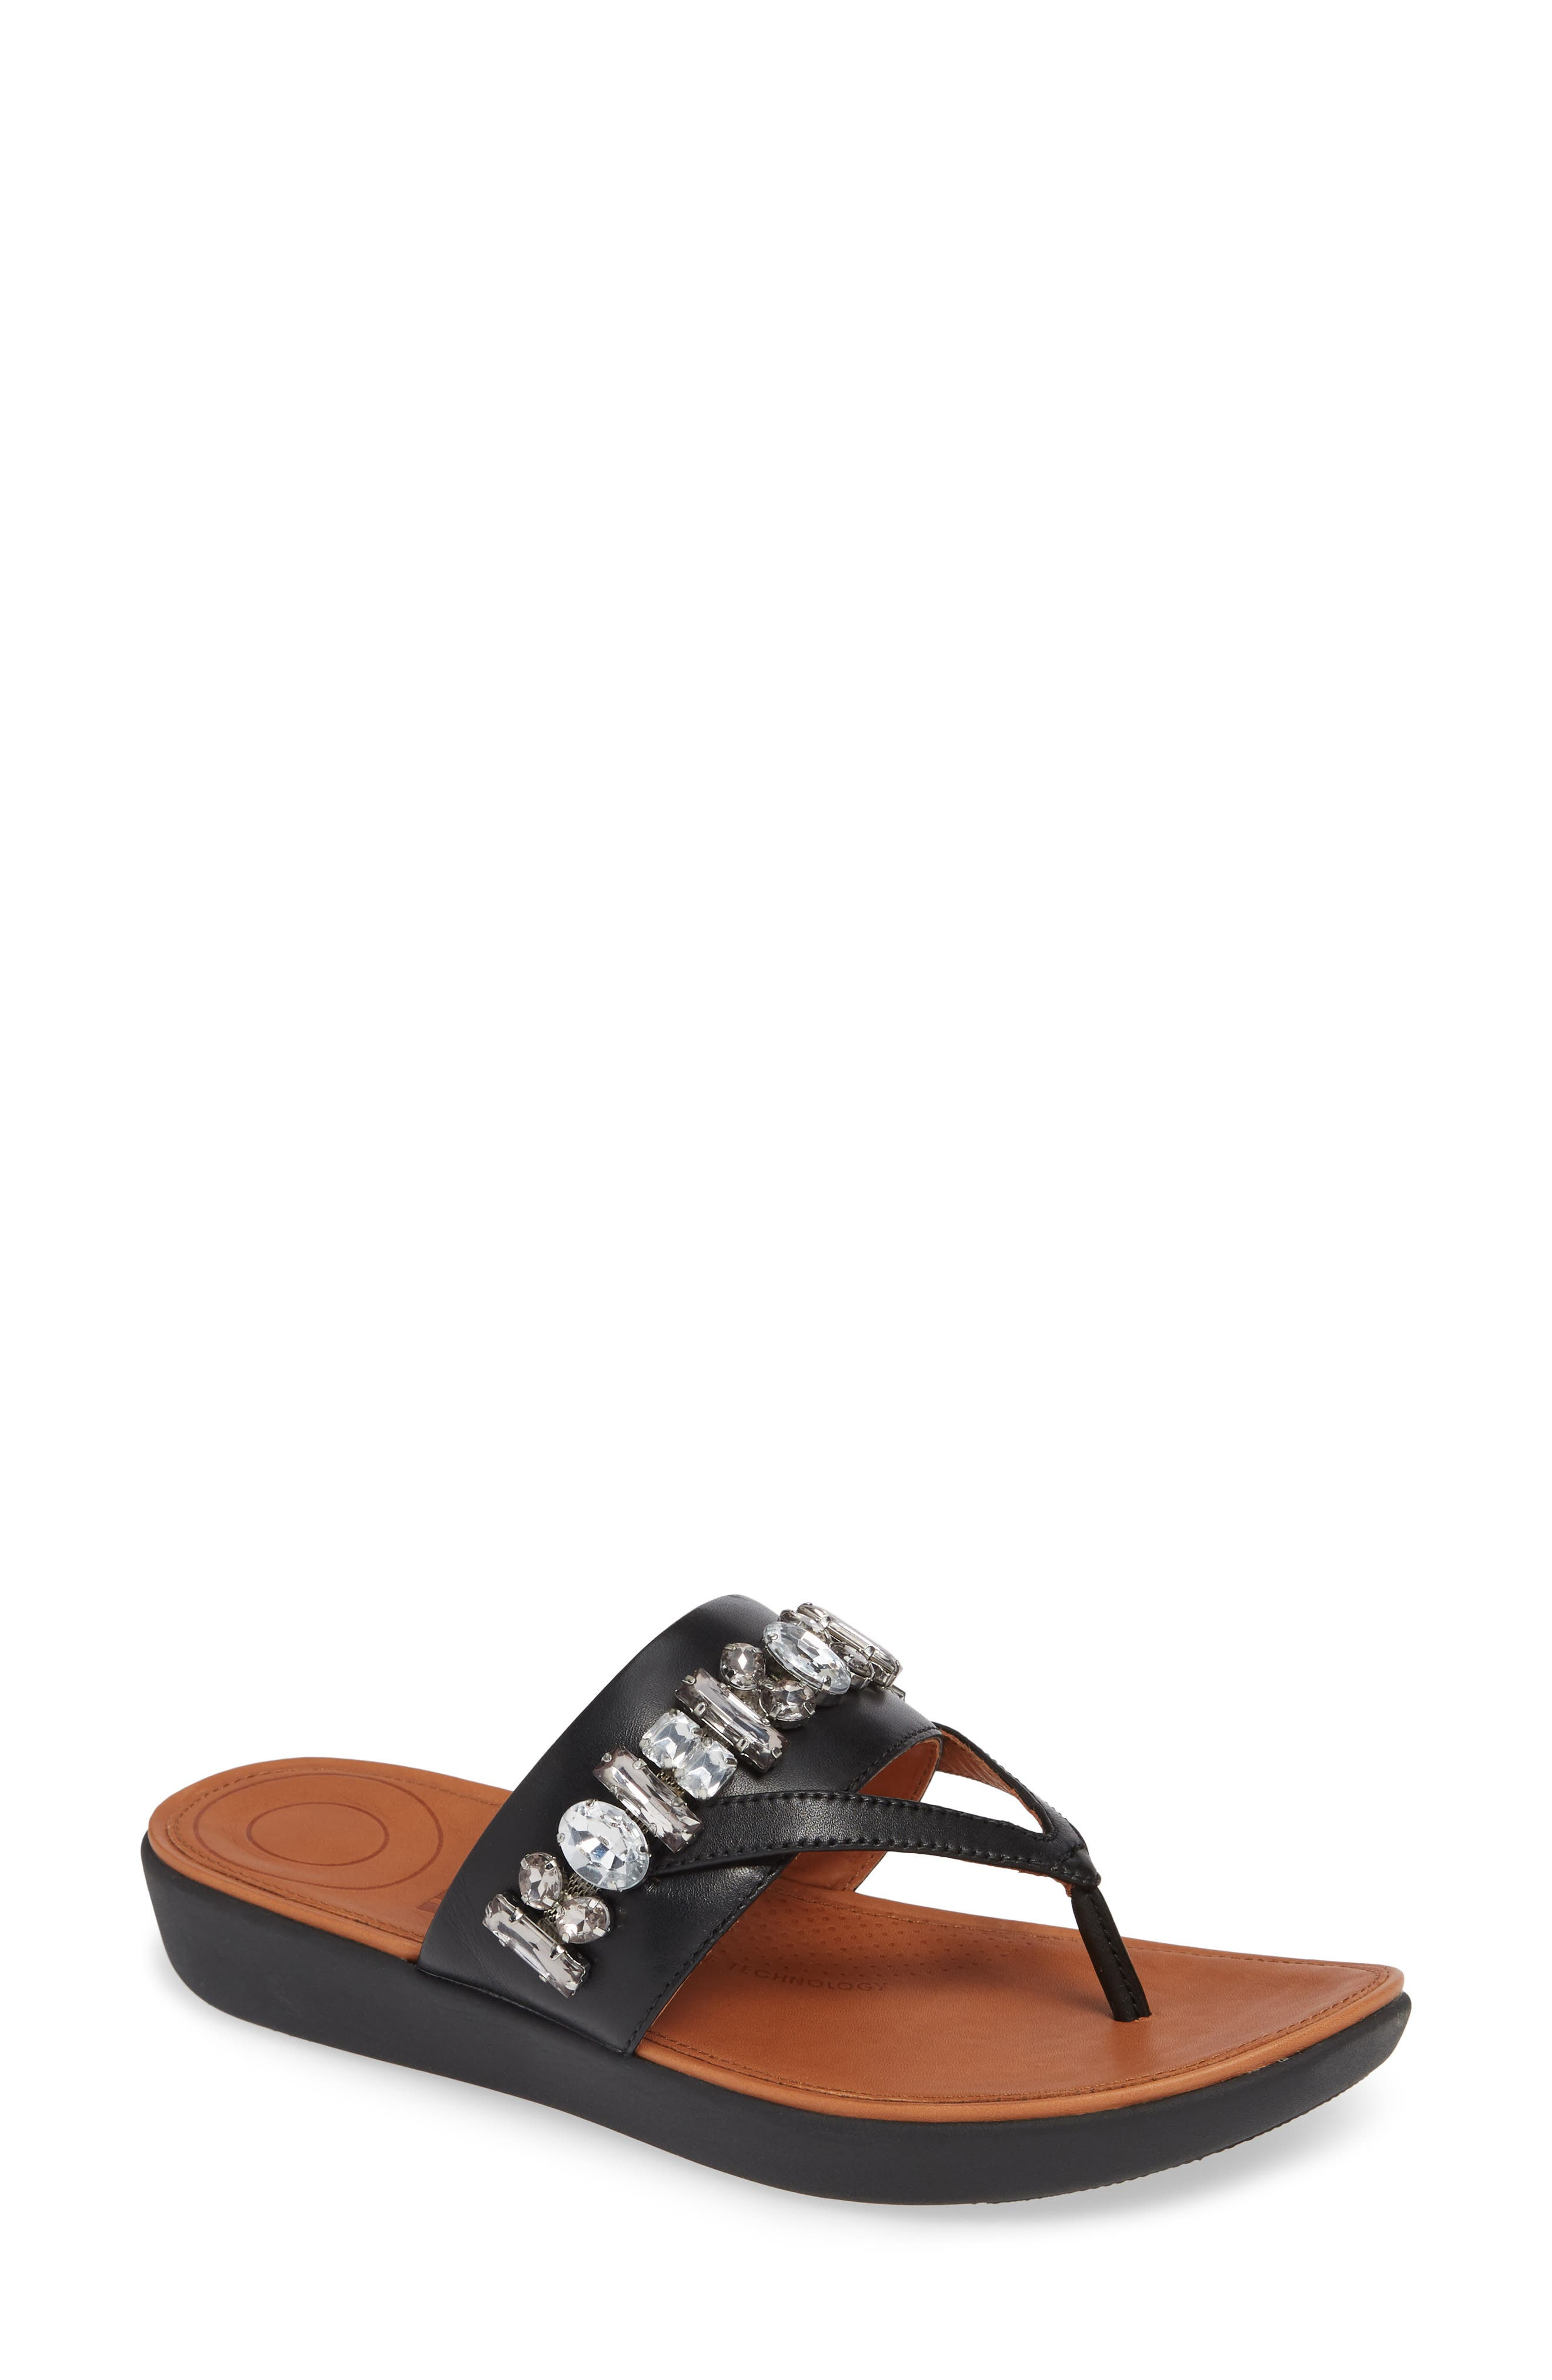 Delta Embellished Slide Sandal,                             Main thumbnail 1, color,                             001